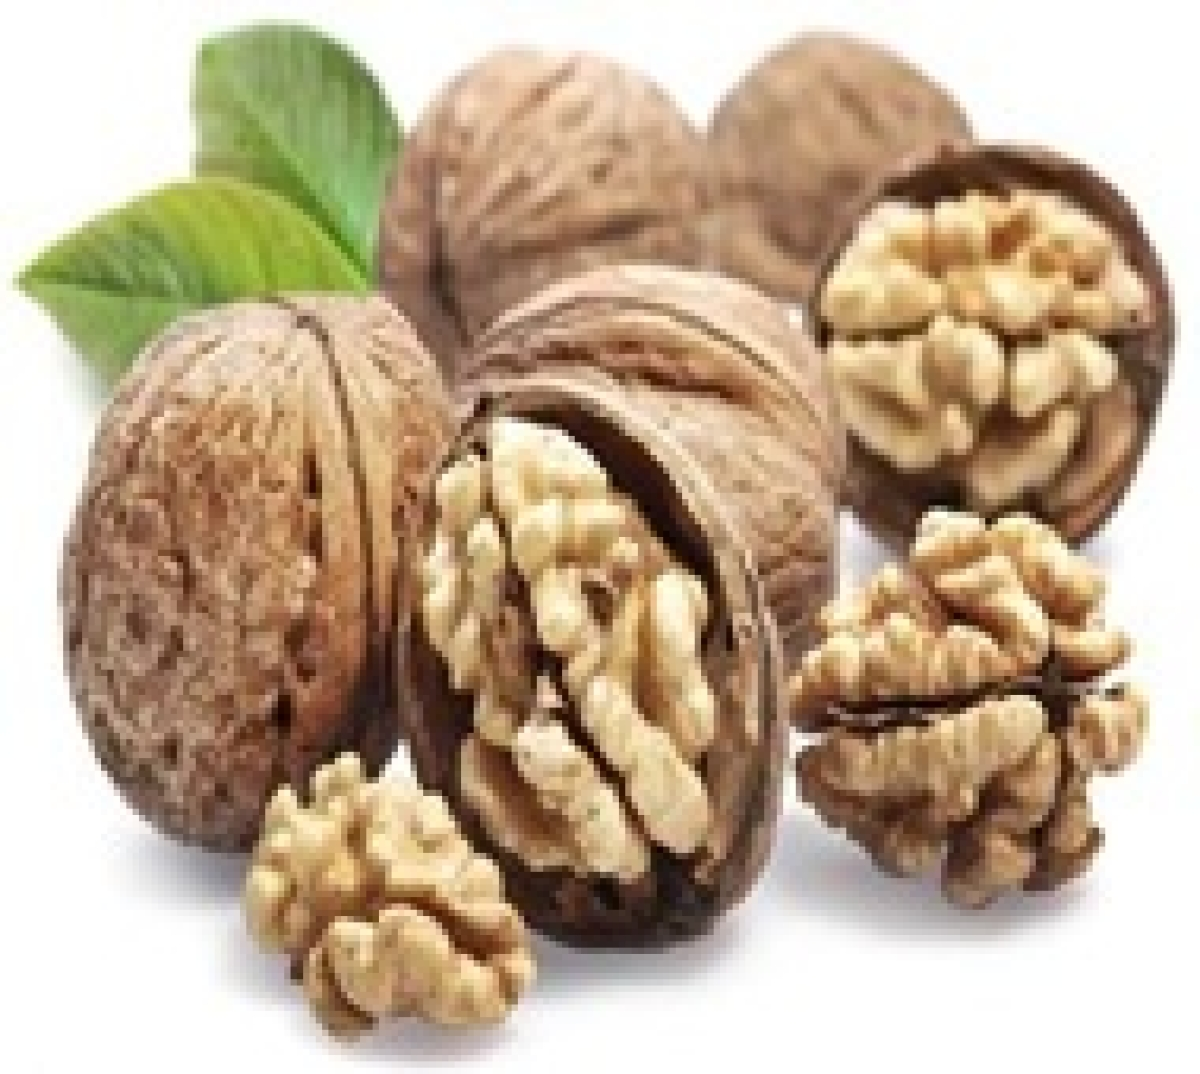 Australian walnuts set to enter Indian market